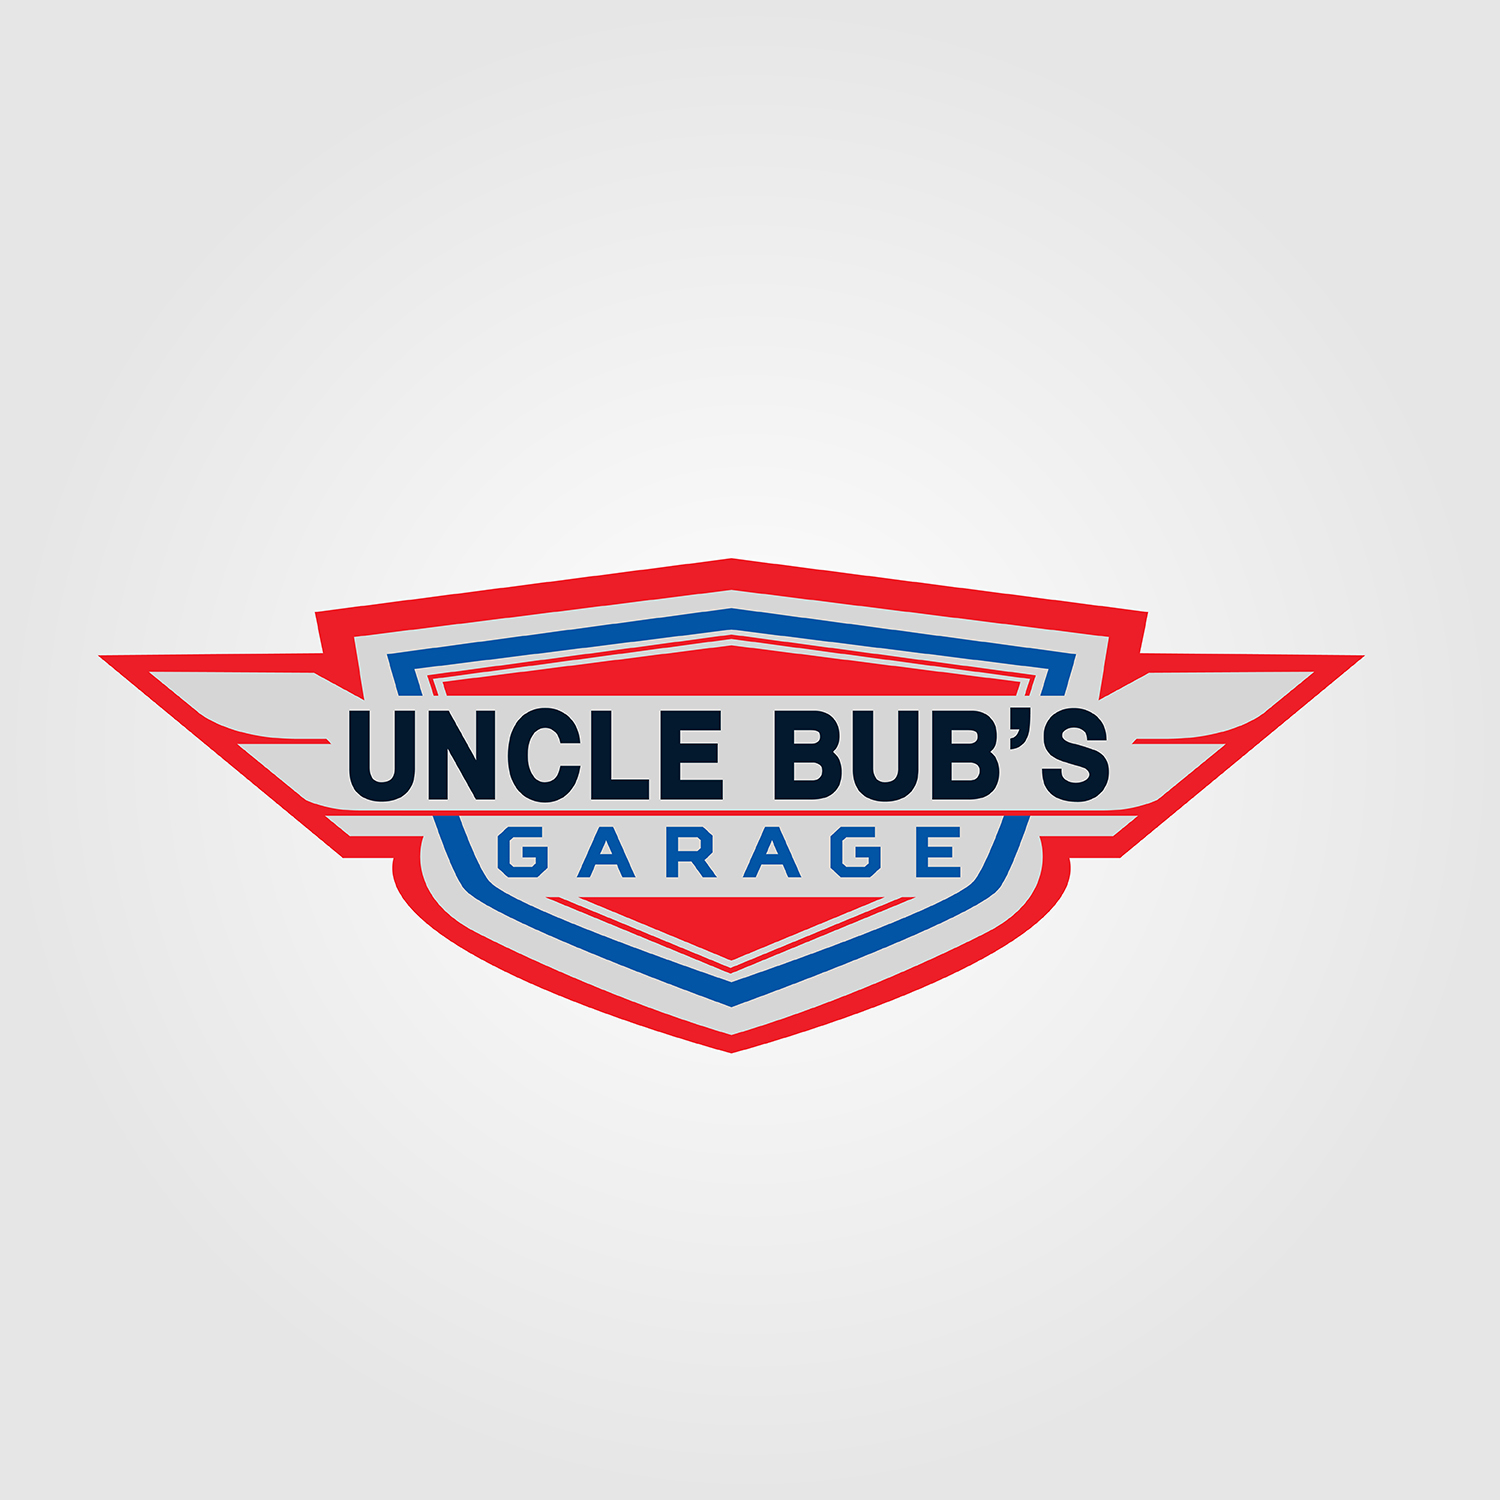 Bold Masculine Automotive Logo Design For Diy Garage By: Uncle Bub's Garage Needs A Logo